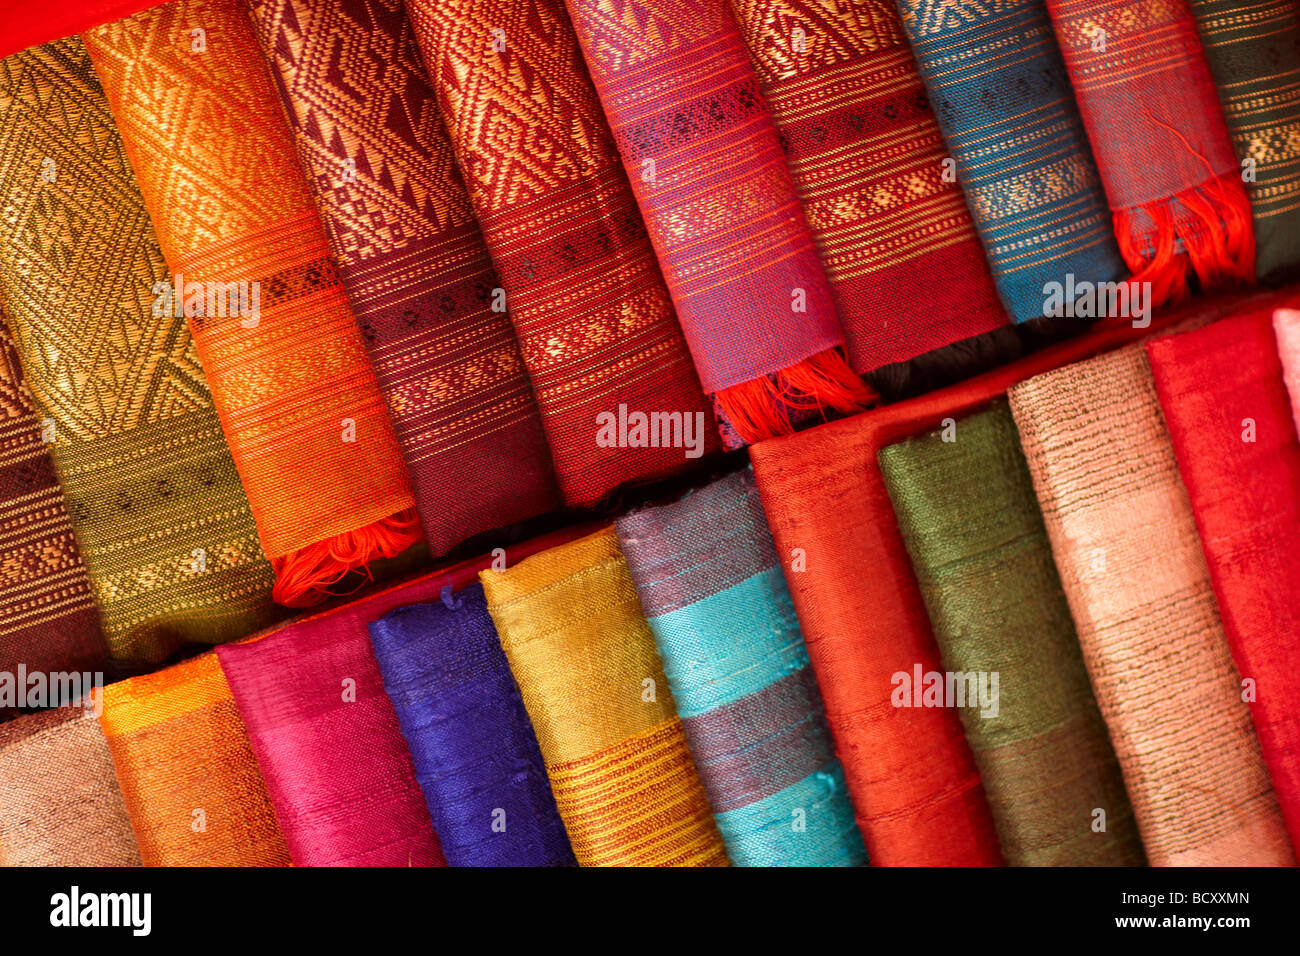 details of silk fabrics on sale in the Night Market, Luang Prabang, Laos - Stock Image